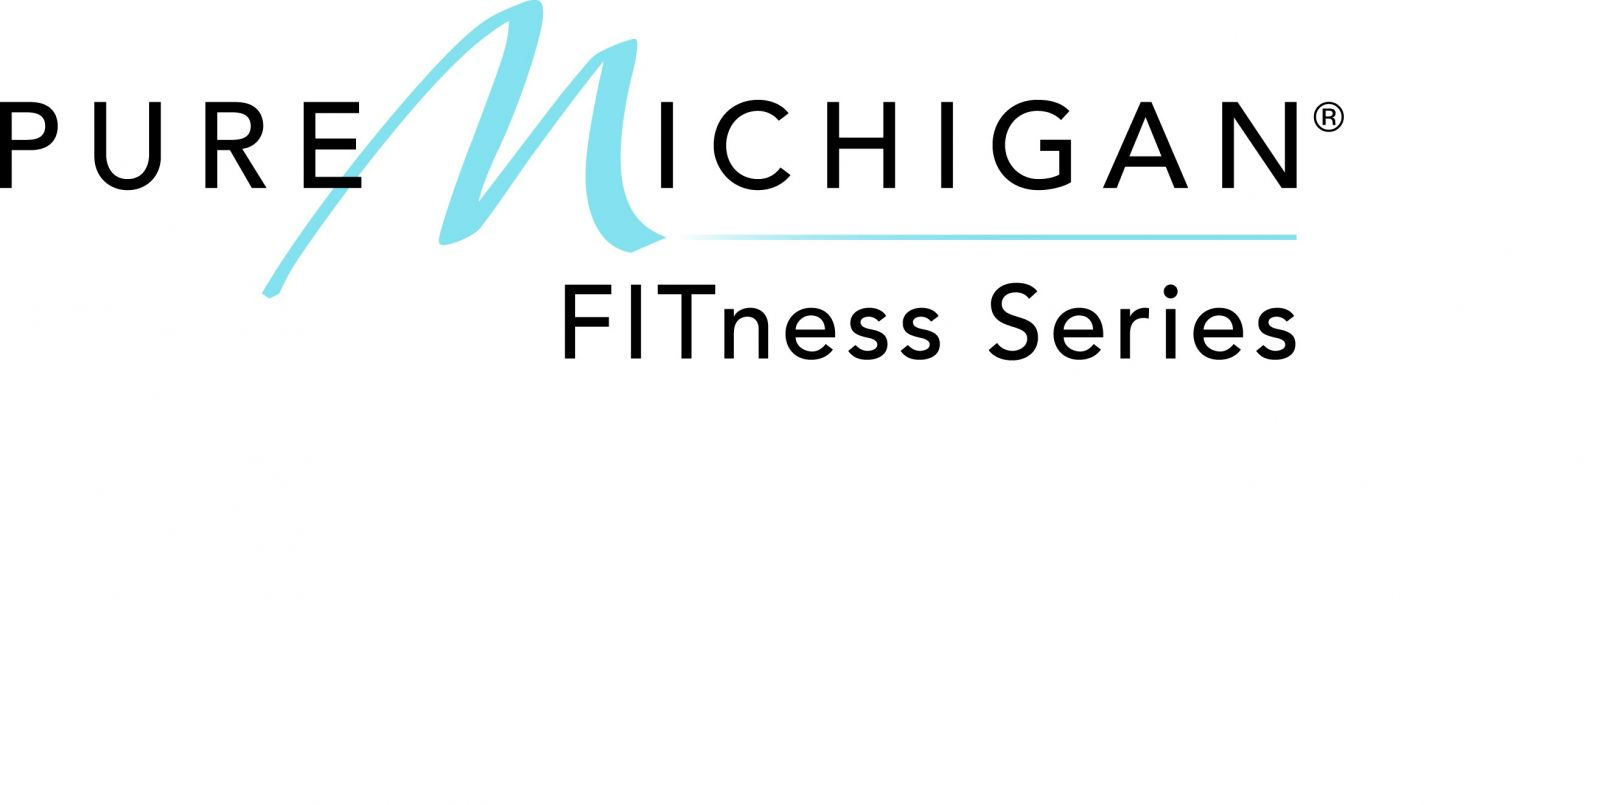 Image of Pure Michigan Fitness Series